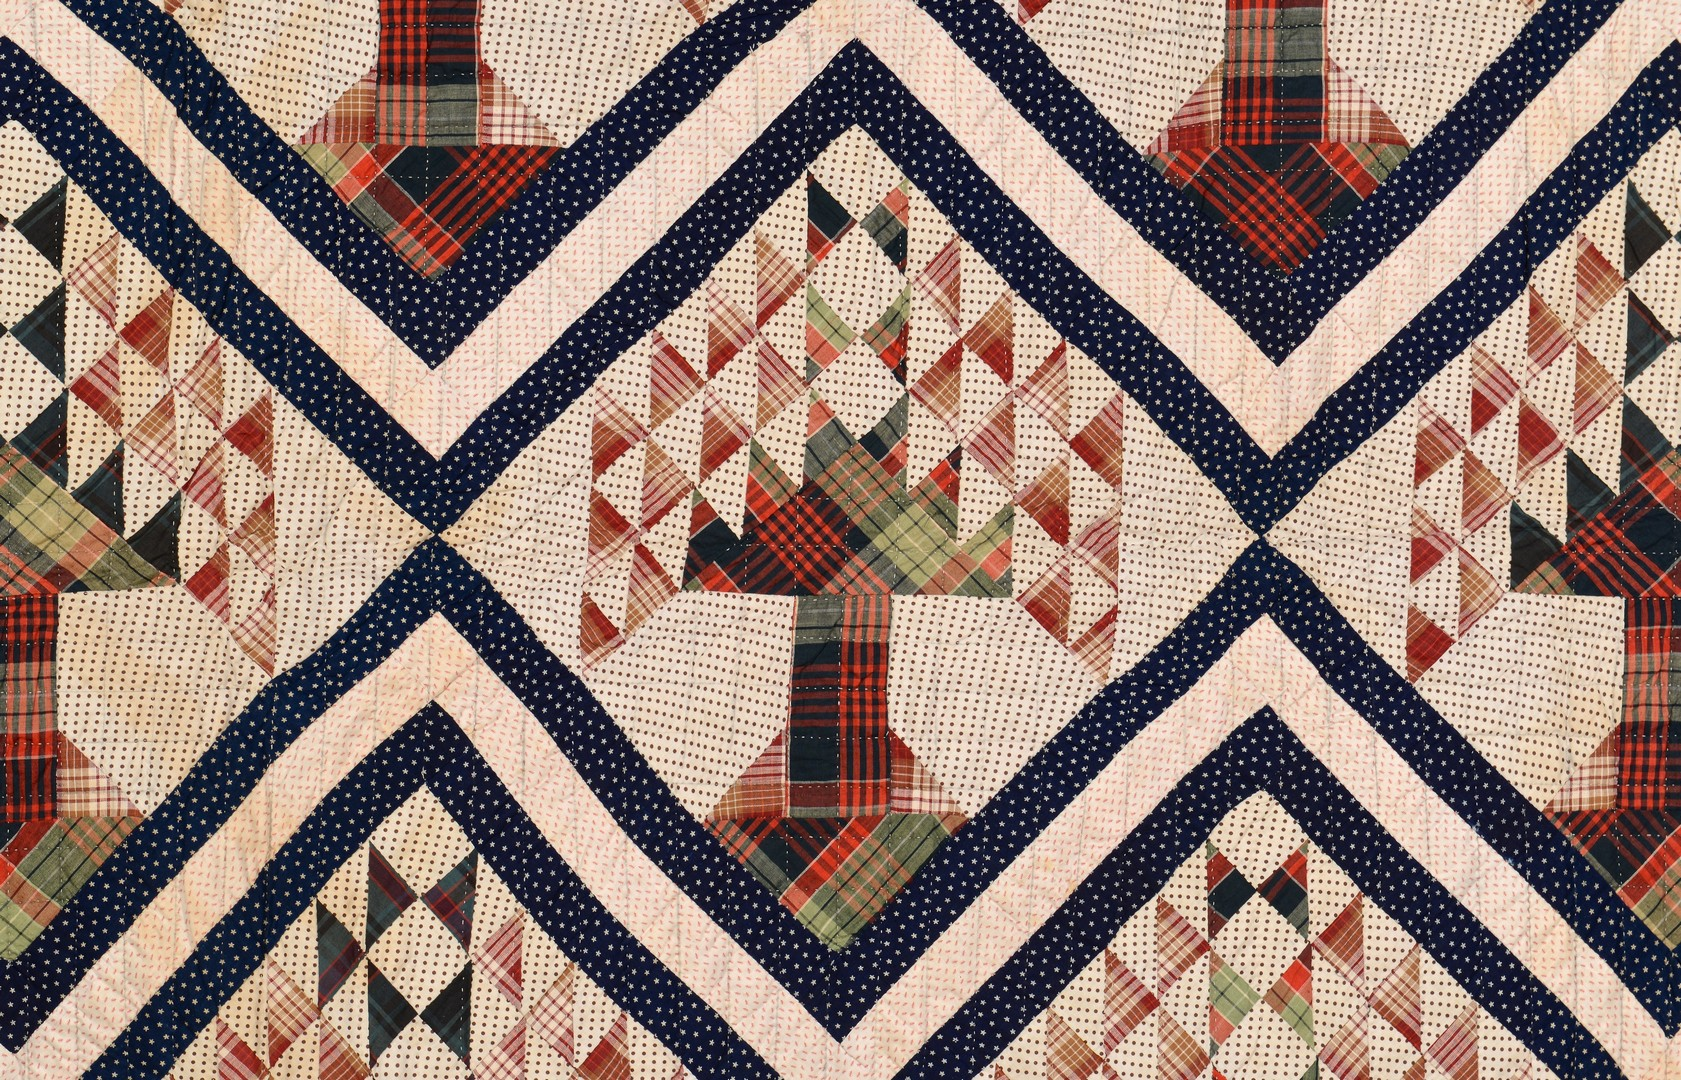 Lot 883: Group of 3 East TN Pieced Cotton Quilts